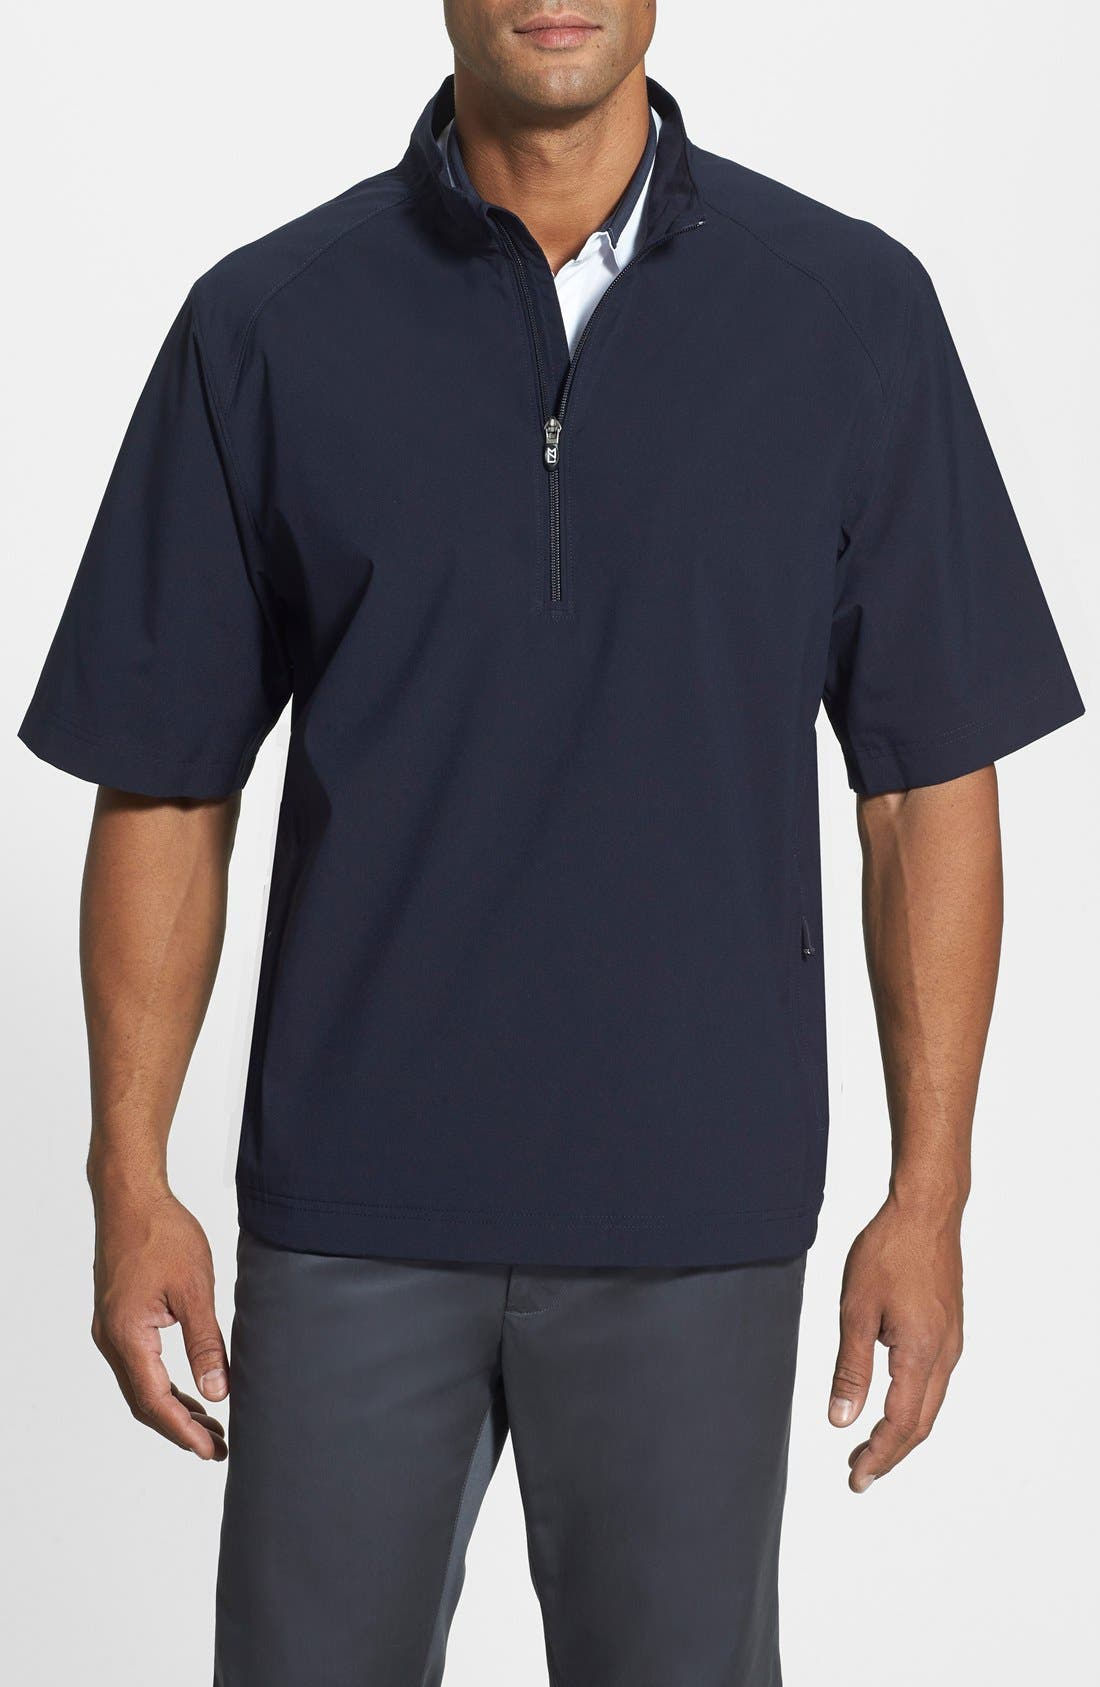 CUTTER & BUCK 'WeatherTec Summit' Short Sleeve Shirt